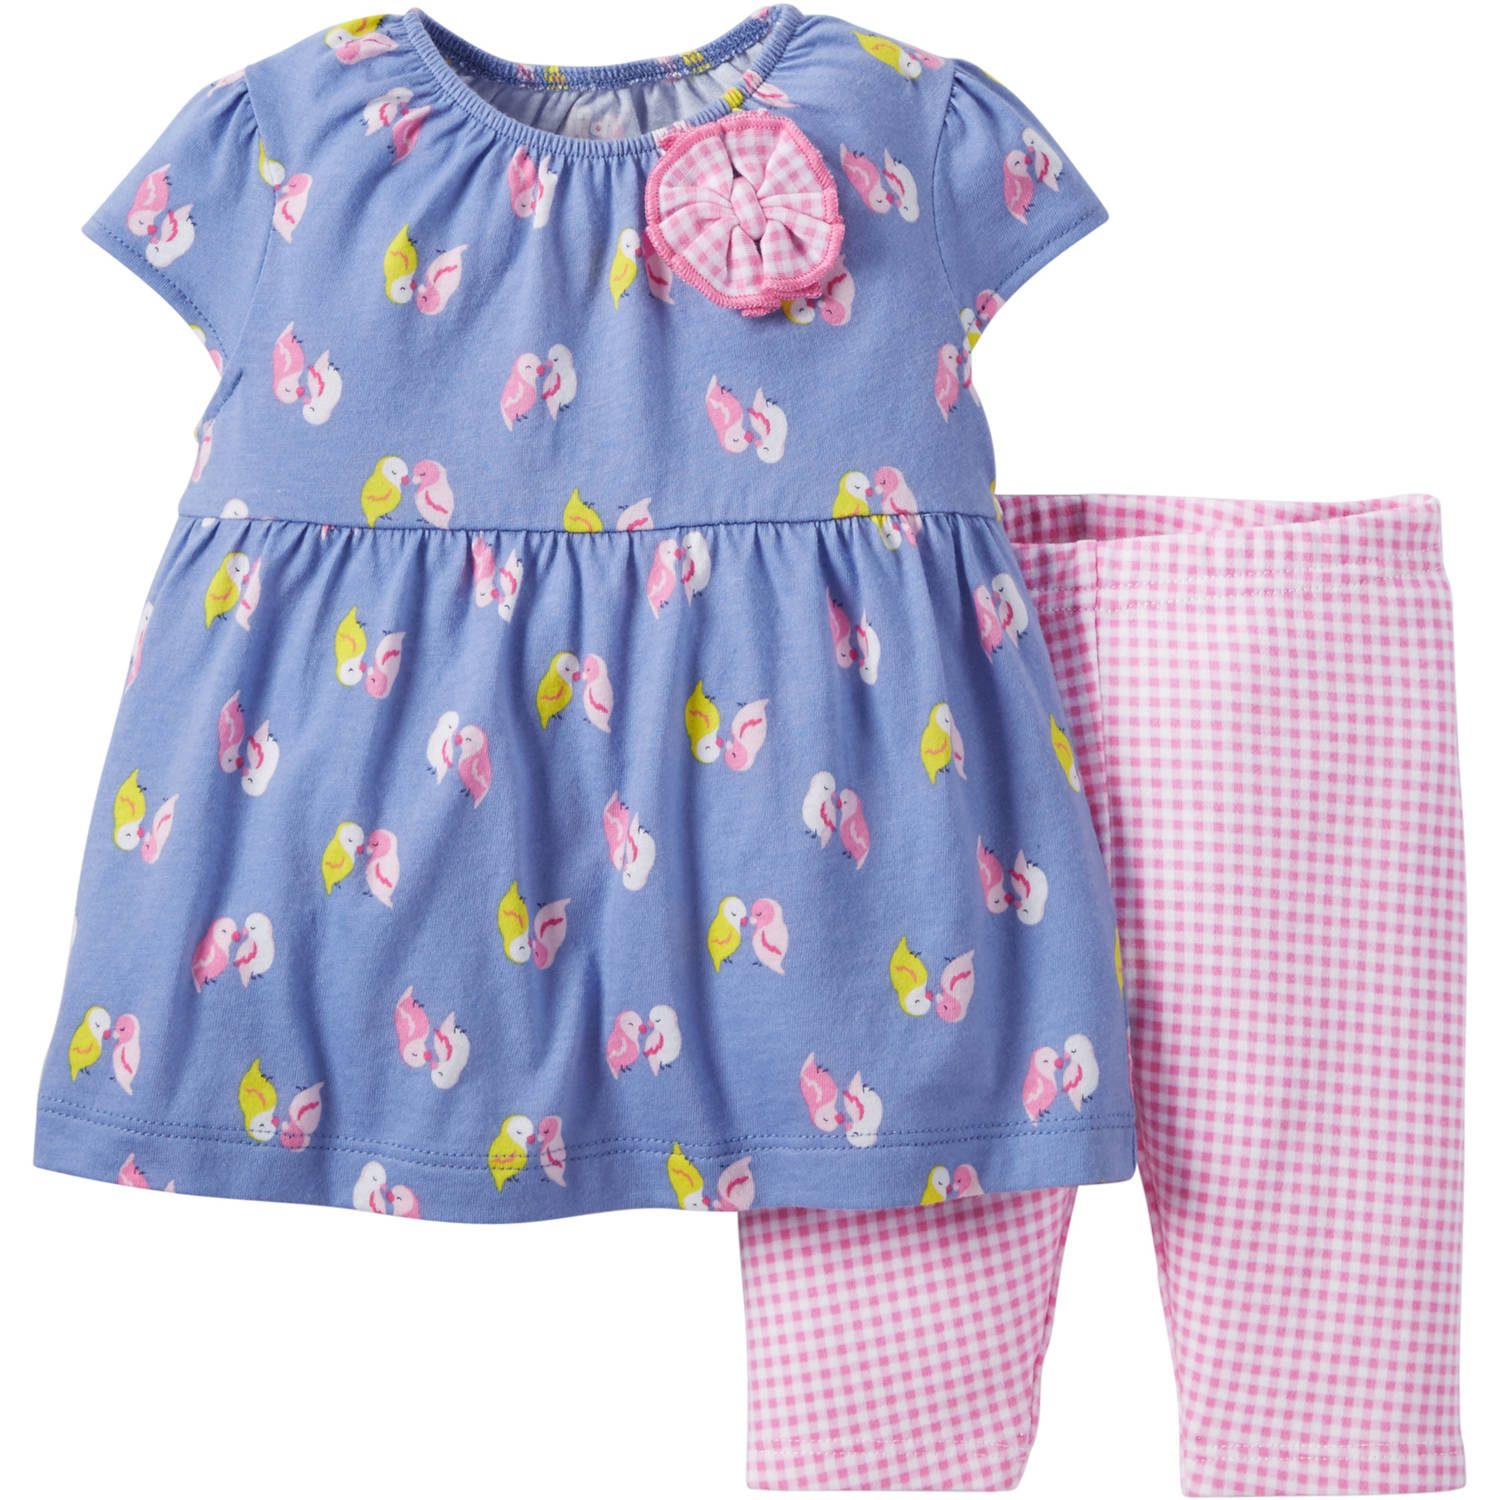 Child of Mine by Carter's Newborn Baby Girl Top and Pant Outfit Set, 2 Pieces